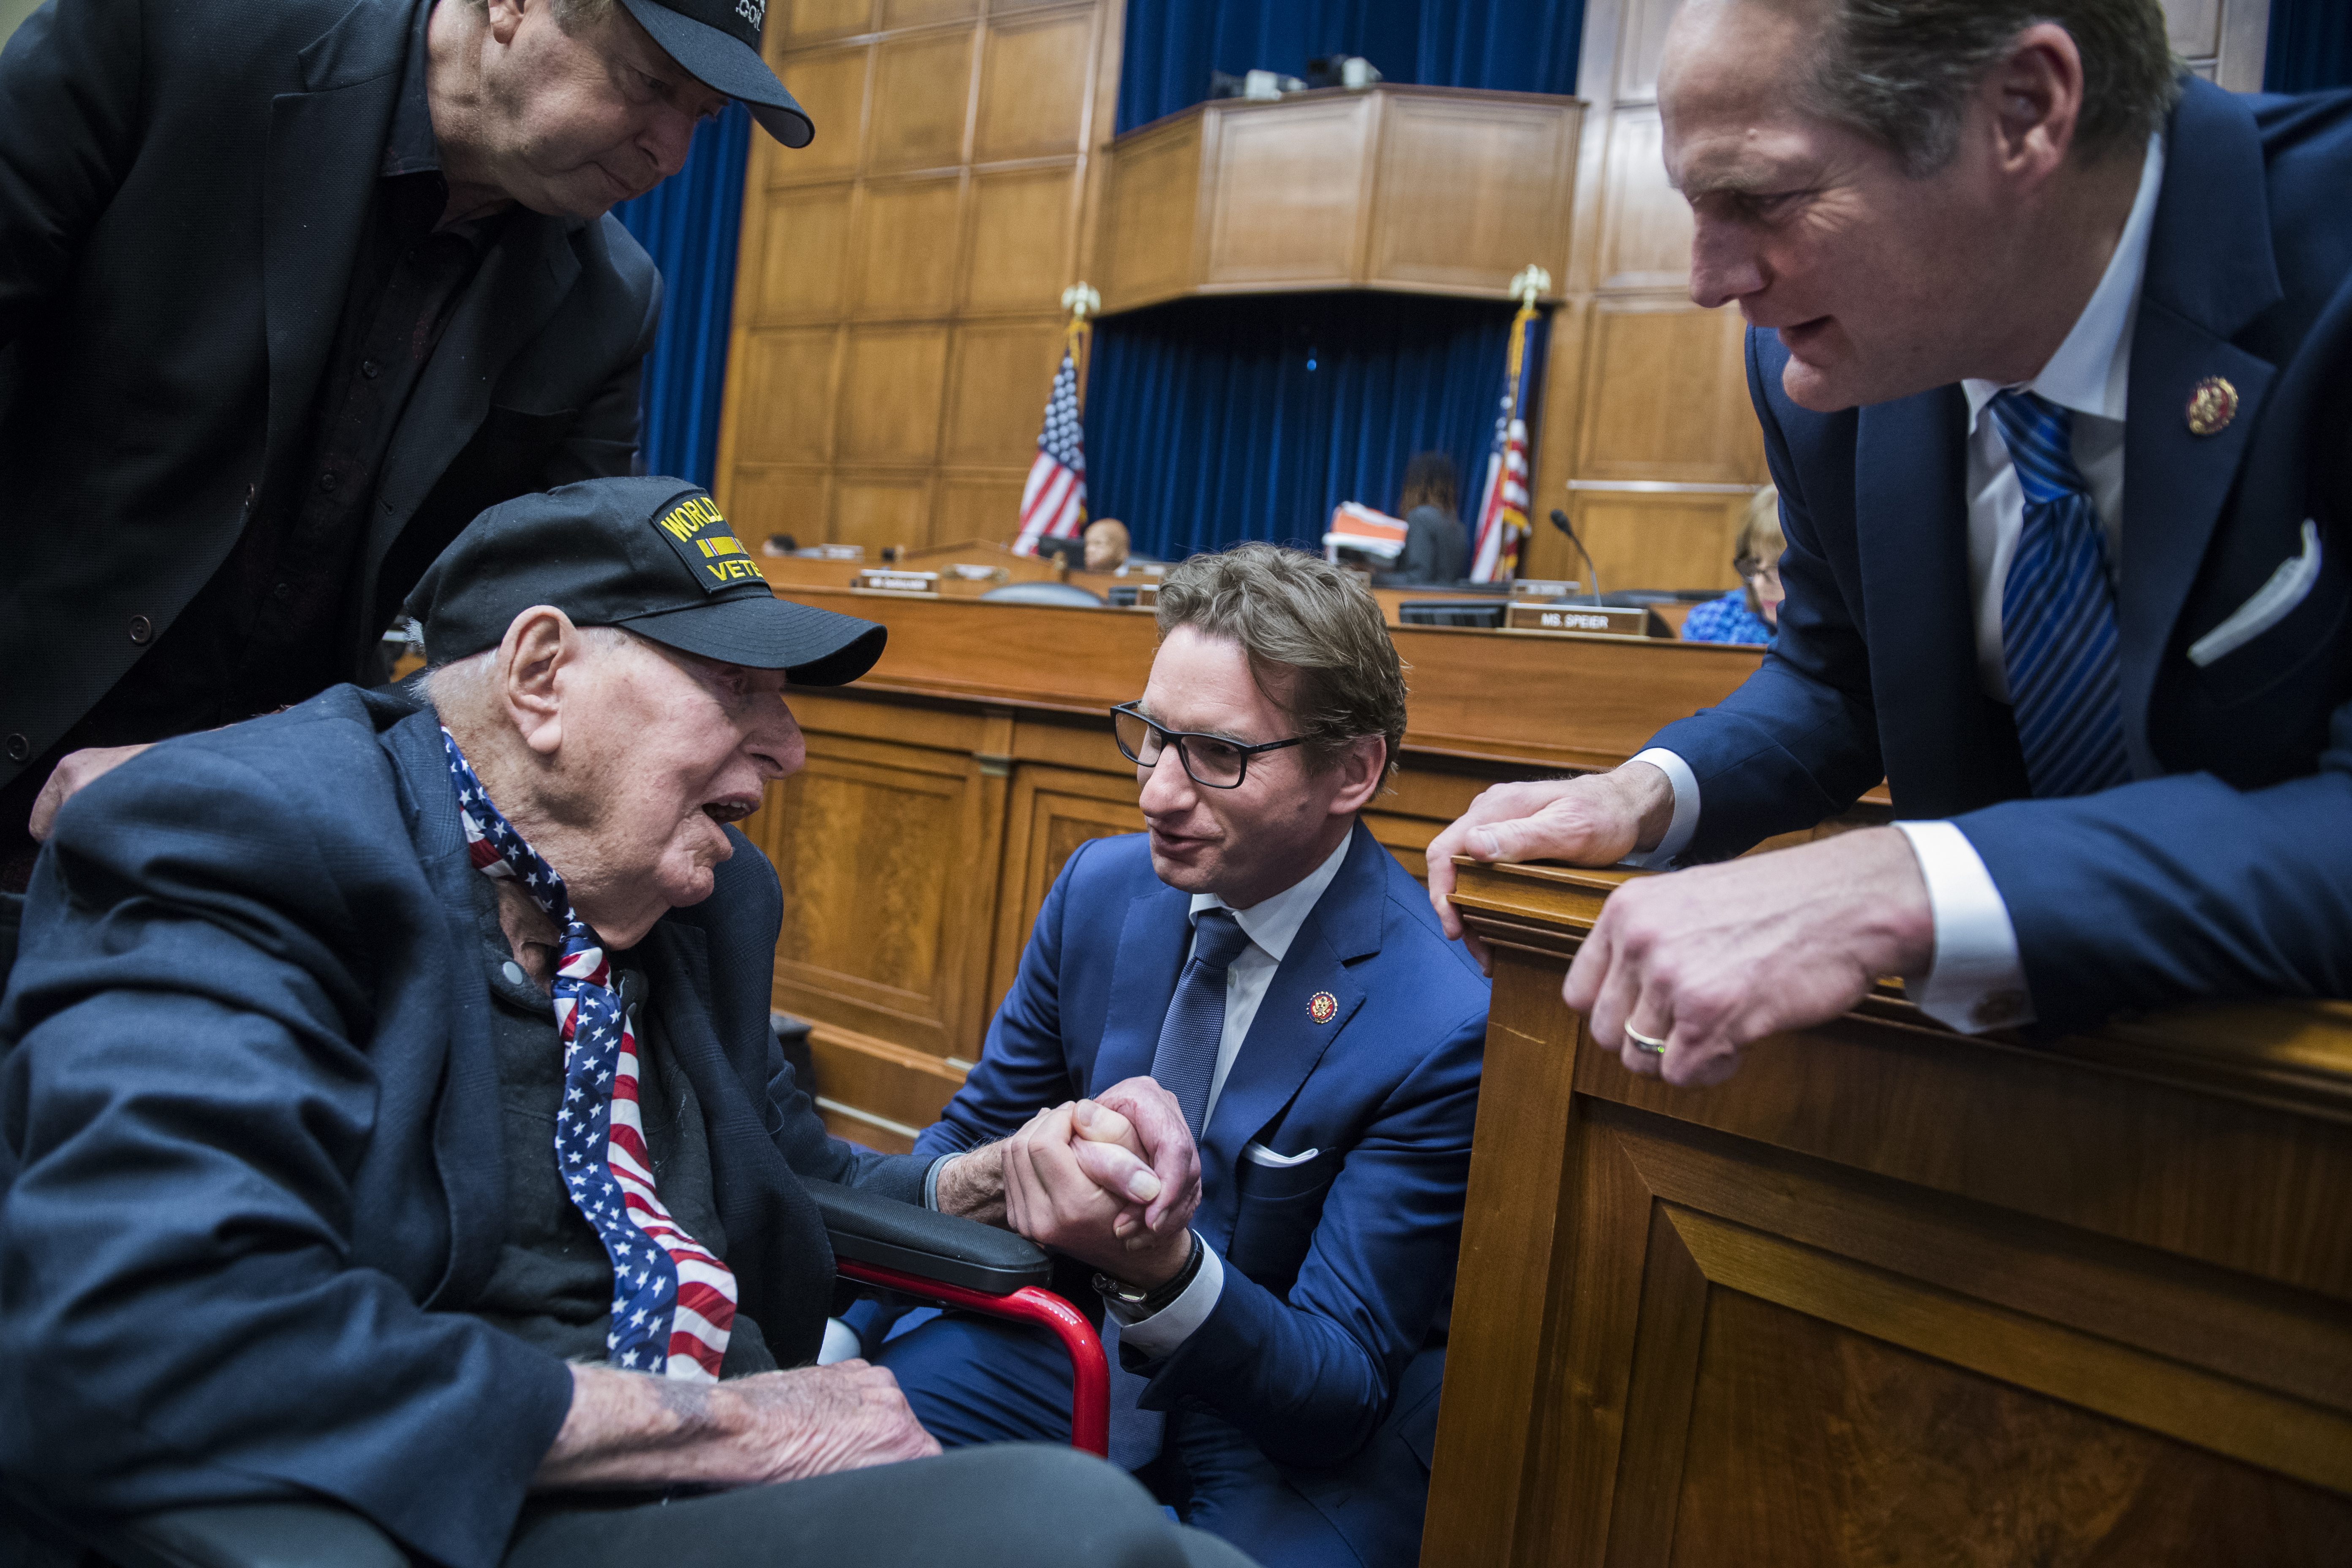 UNITED STATES - FEBRUARY 27: Reps. Dean Phillips, D-Minn., center, and Harley Rouda, D-Calif., right, talks with World War II veteran Sidney Walton, 100, of San Diego, during a break in a House Oversight and Reform Committee hearing in Rayburn Building featuring testimony by Michael Cohen, former attorney for President Donald Trump, on Russian interference in the 2016 election on Wednesday, February 27, 2019. Walton, seen with his son Paul, left, served in India during the war. (Photo By Tom Williams/CQ Roll Call)